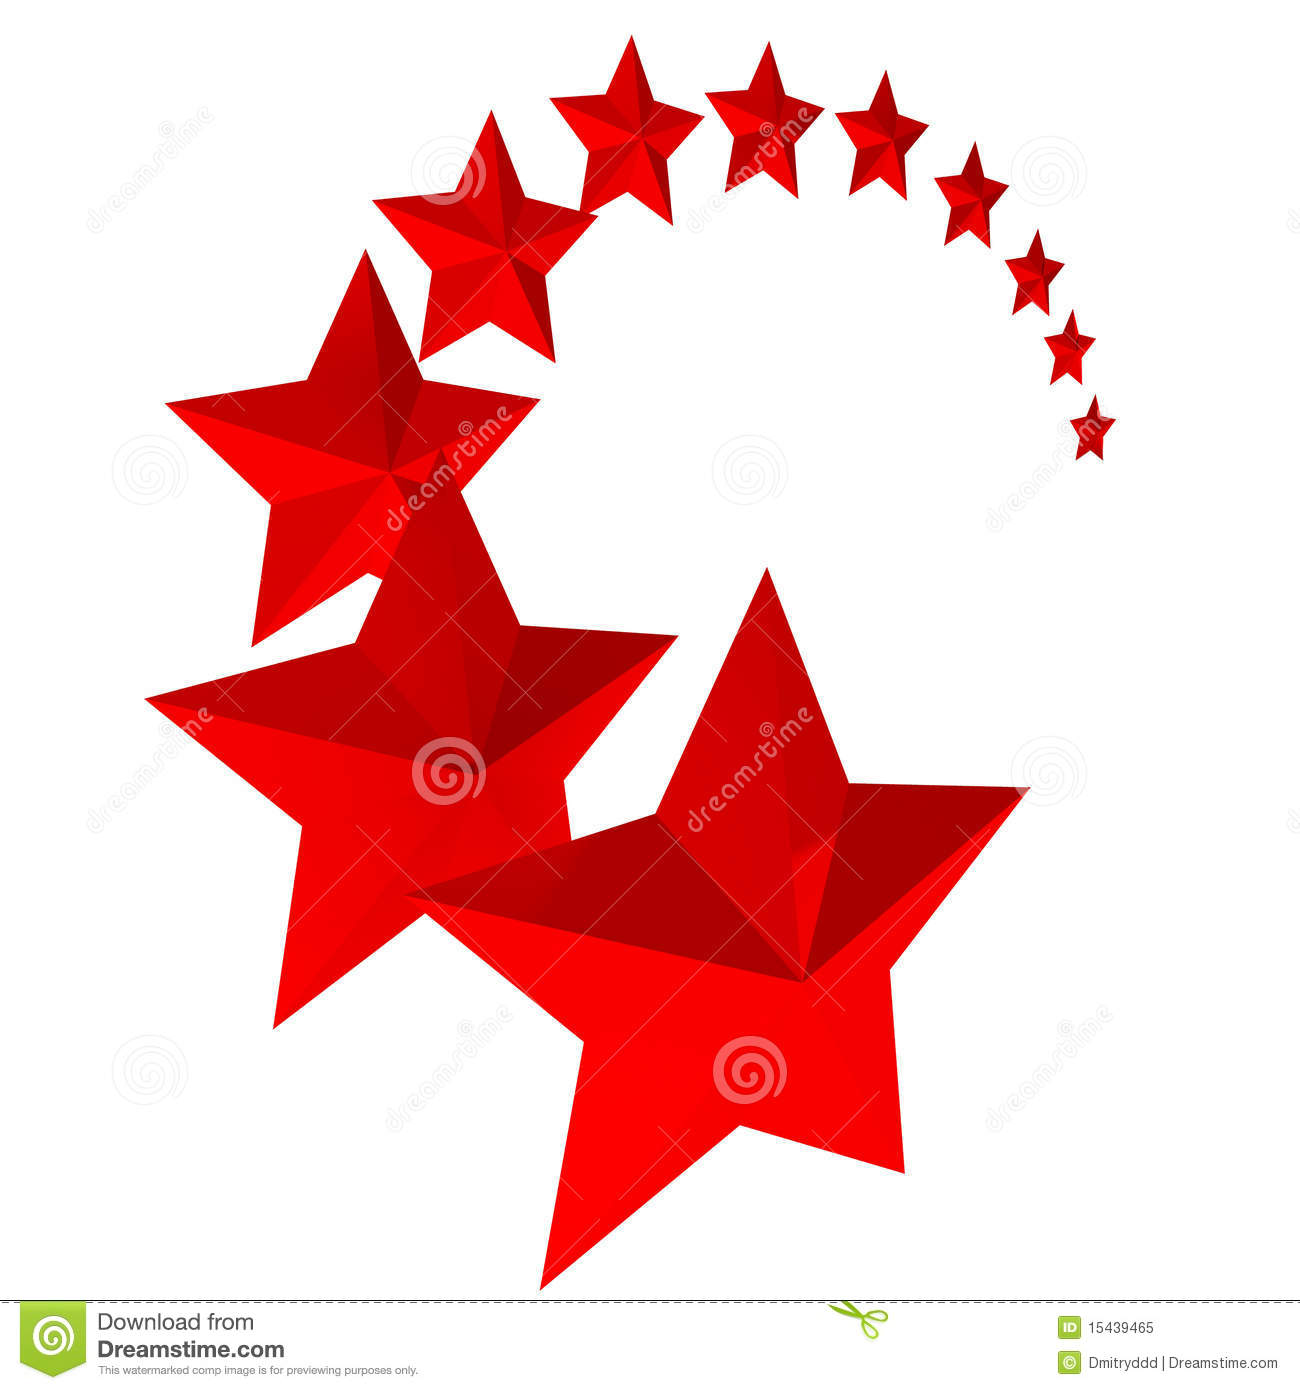 red star wallpaper 3d - photo #15